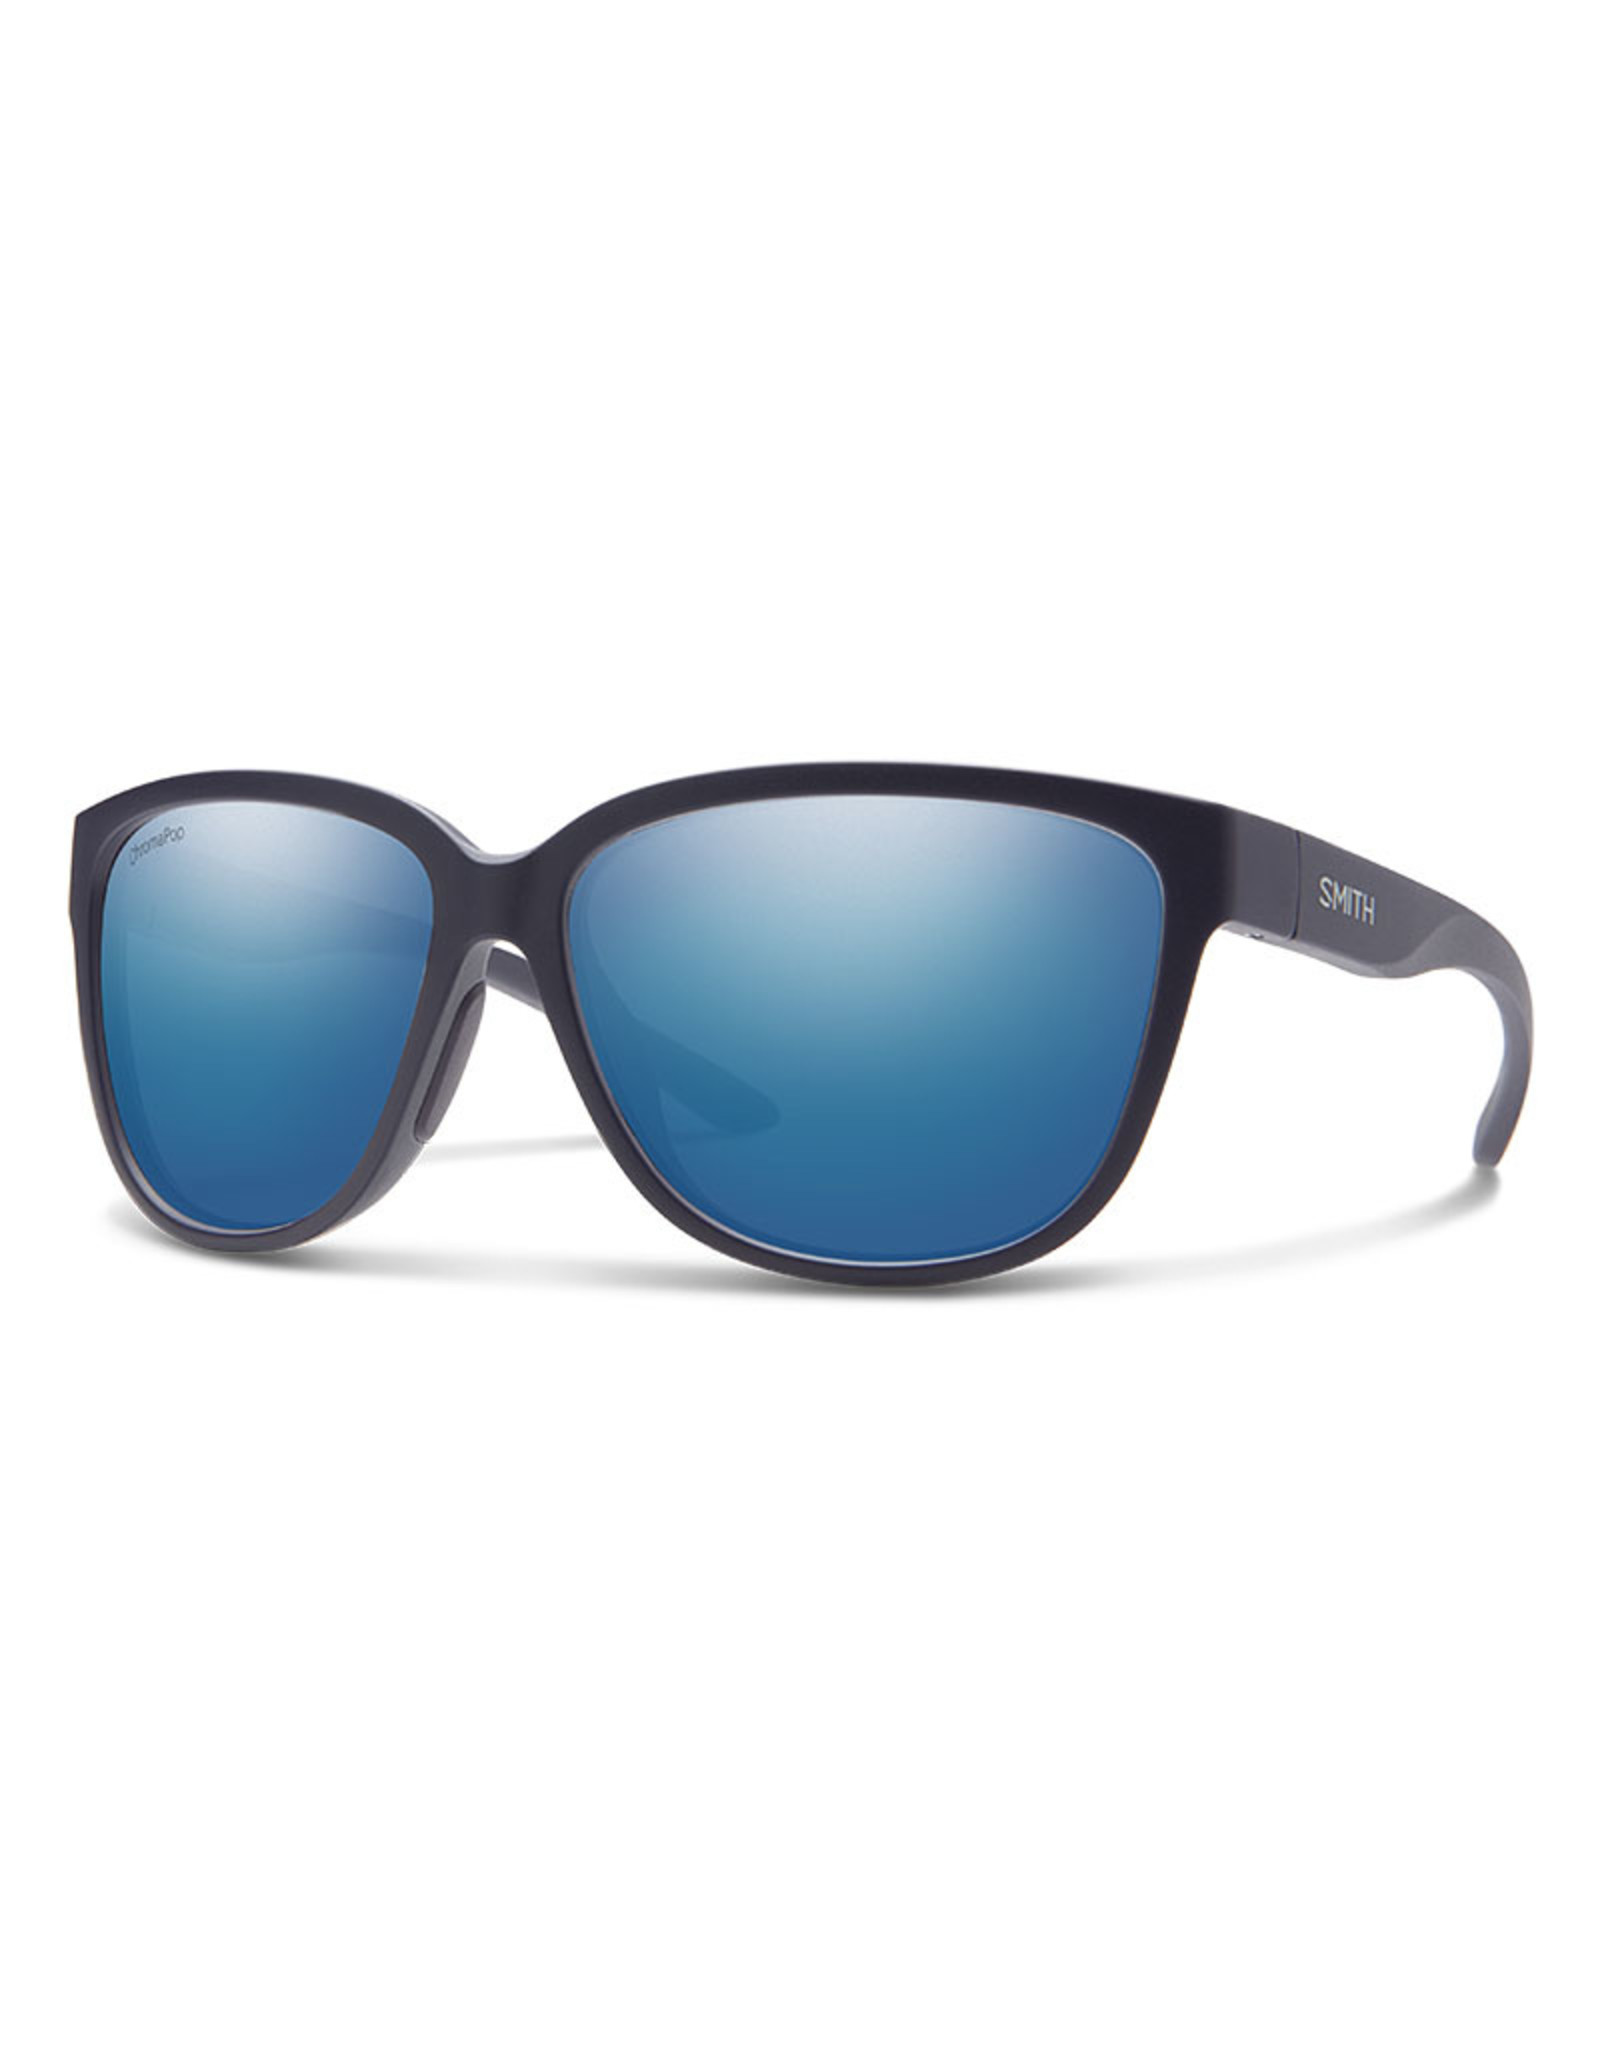 Smith SMITH MONTEREY Matte Midnight ChromaPop Polarized Blue Mirror